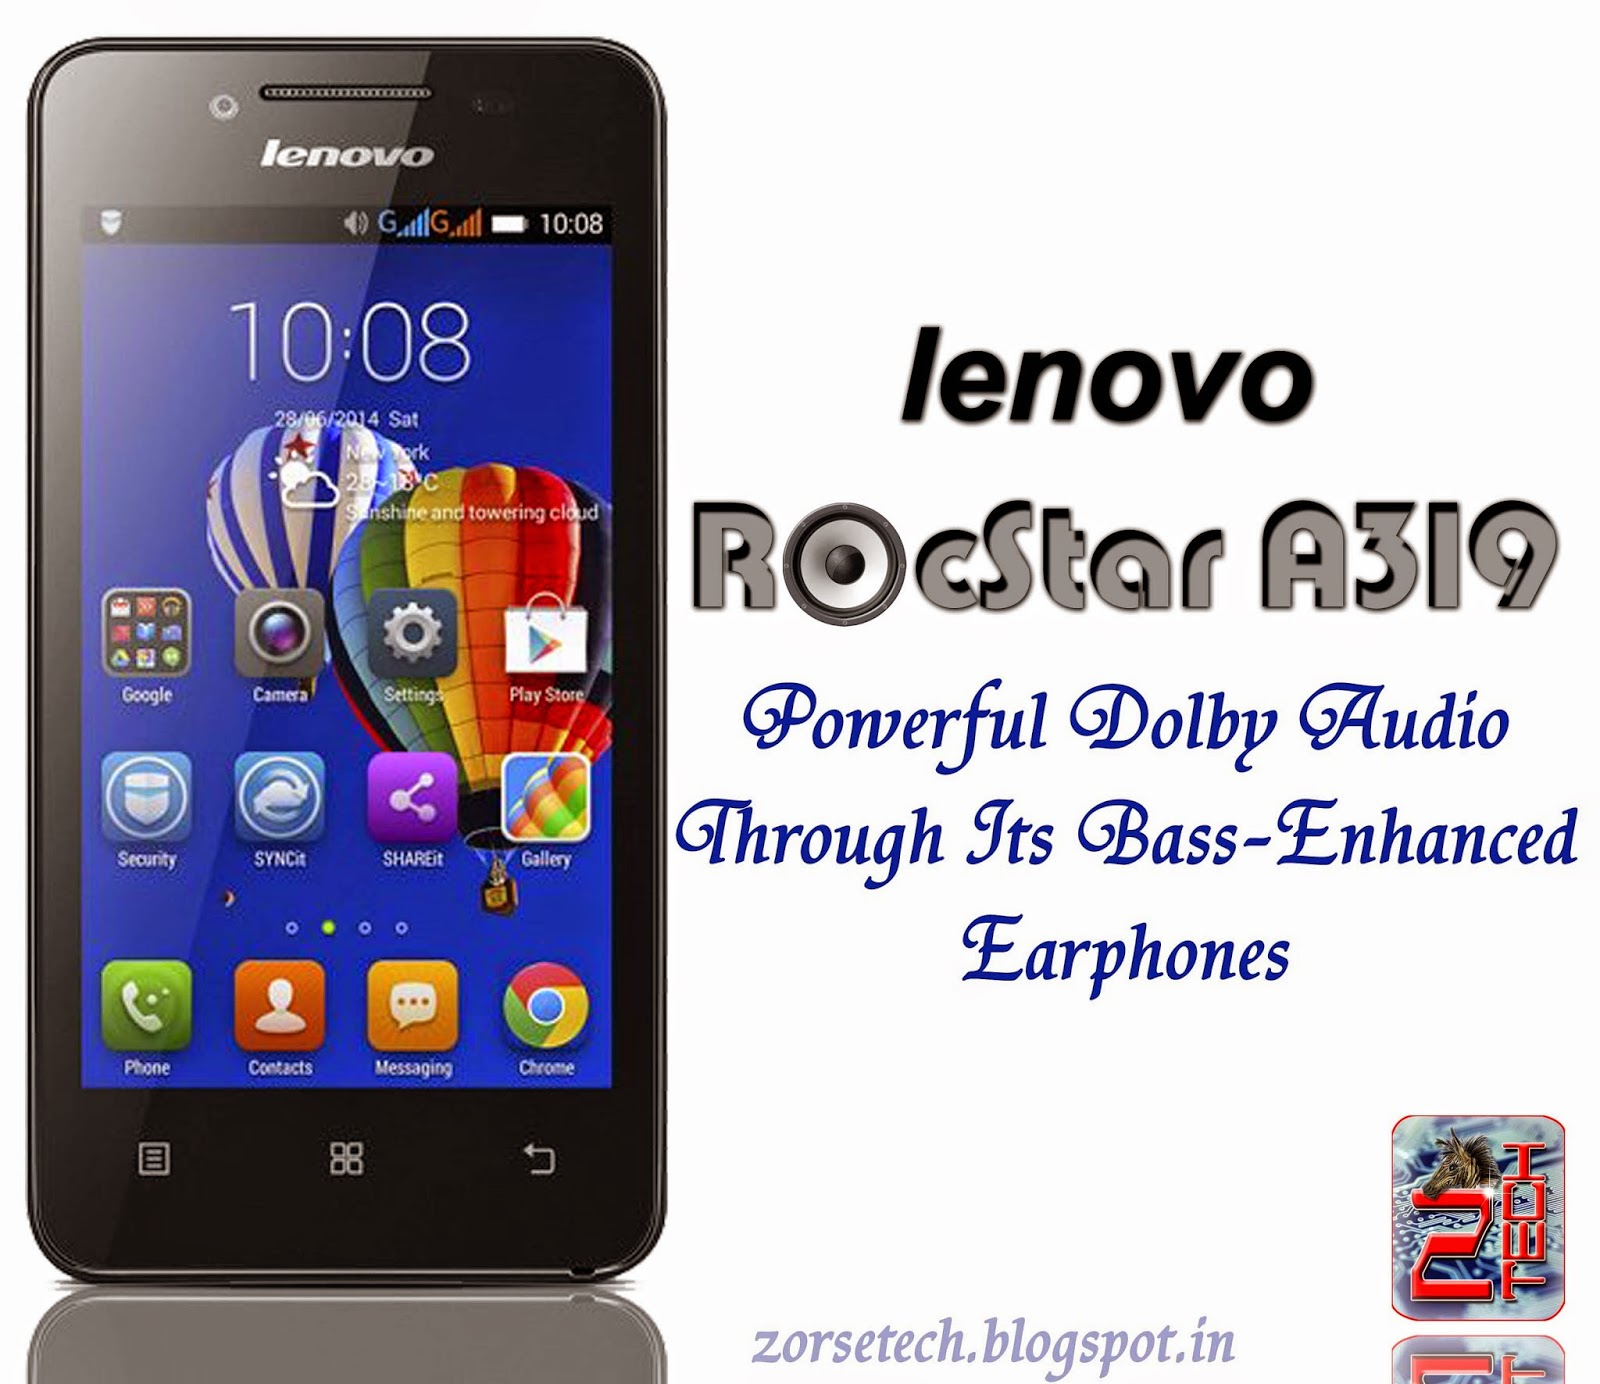 lenovo rocstart a319 with 4 inch wvga touch screenm 800x480p resolution, 512 MP RAM, 5 MP rear camera, 2 MP front camera, 1500 mAh battery